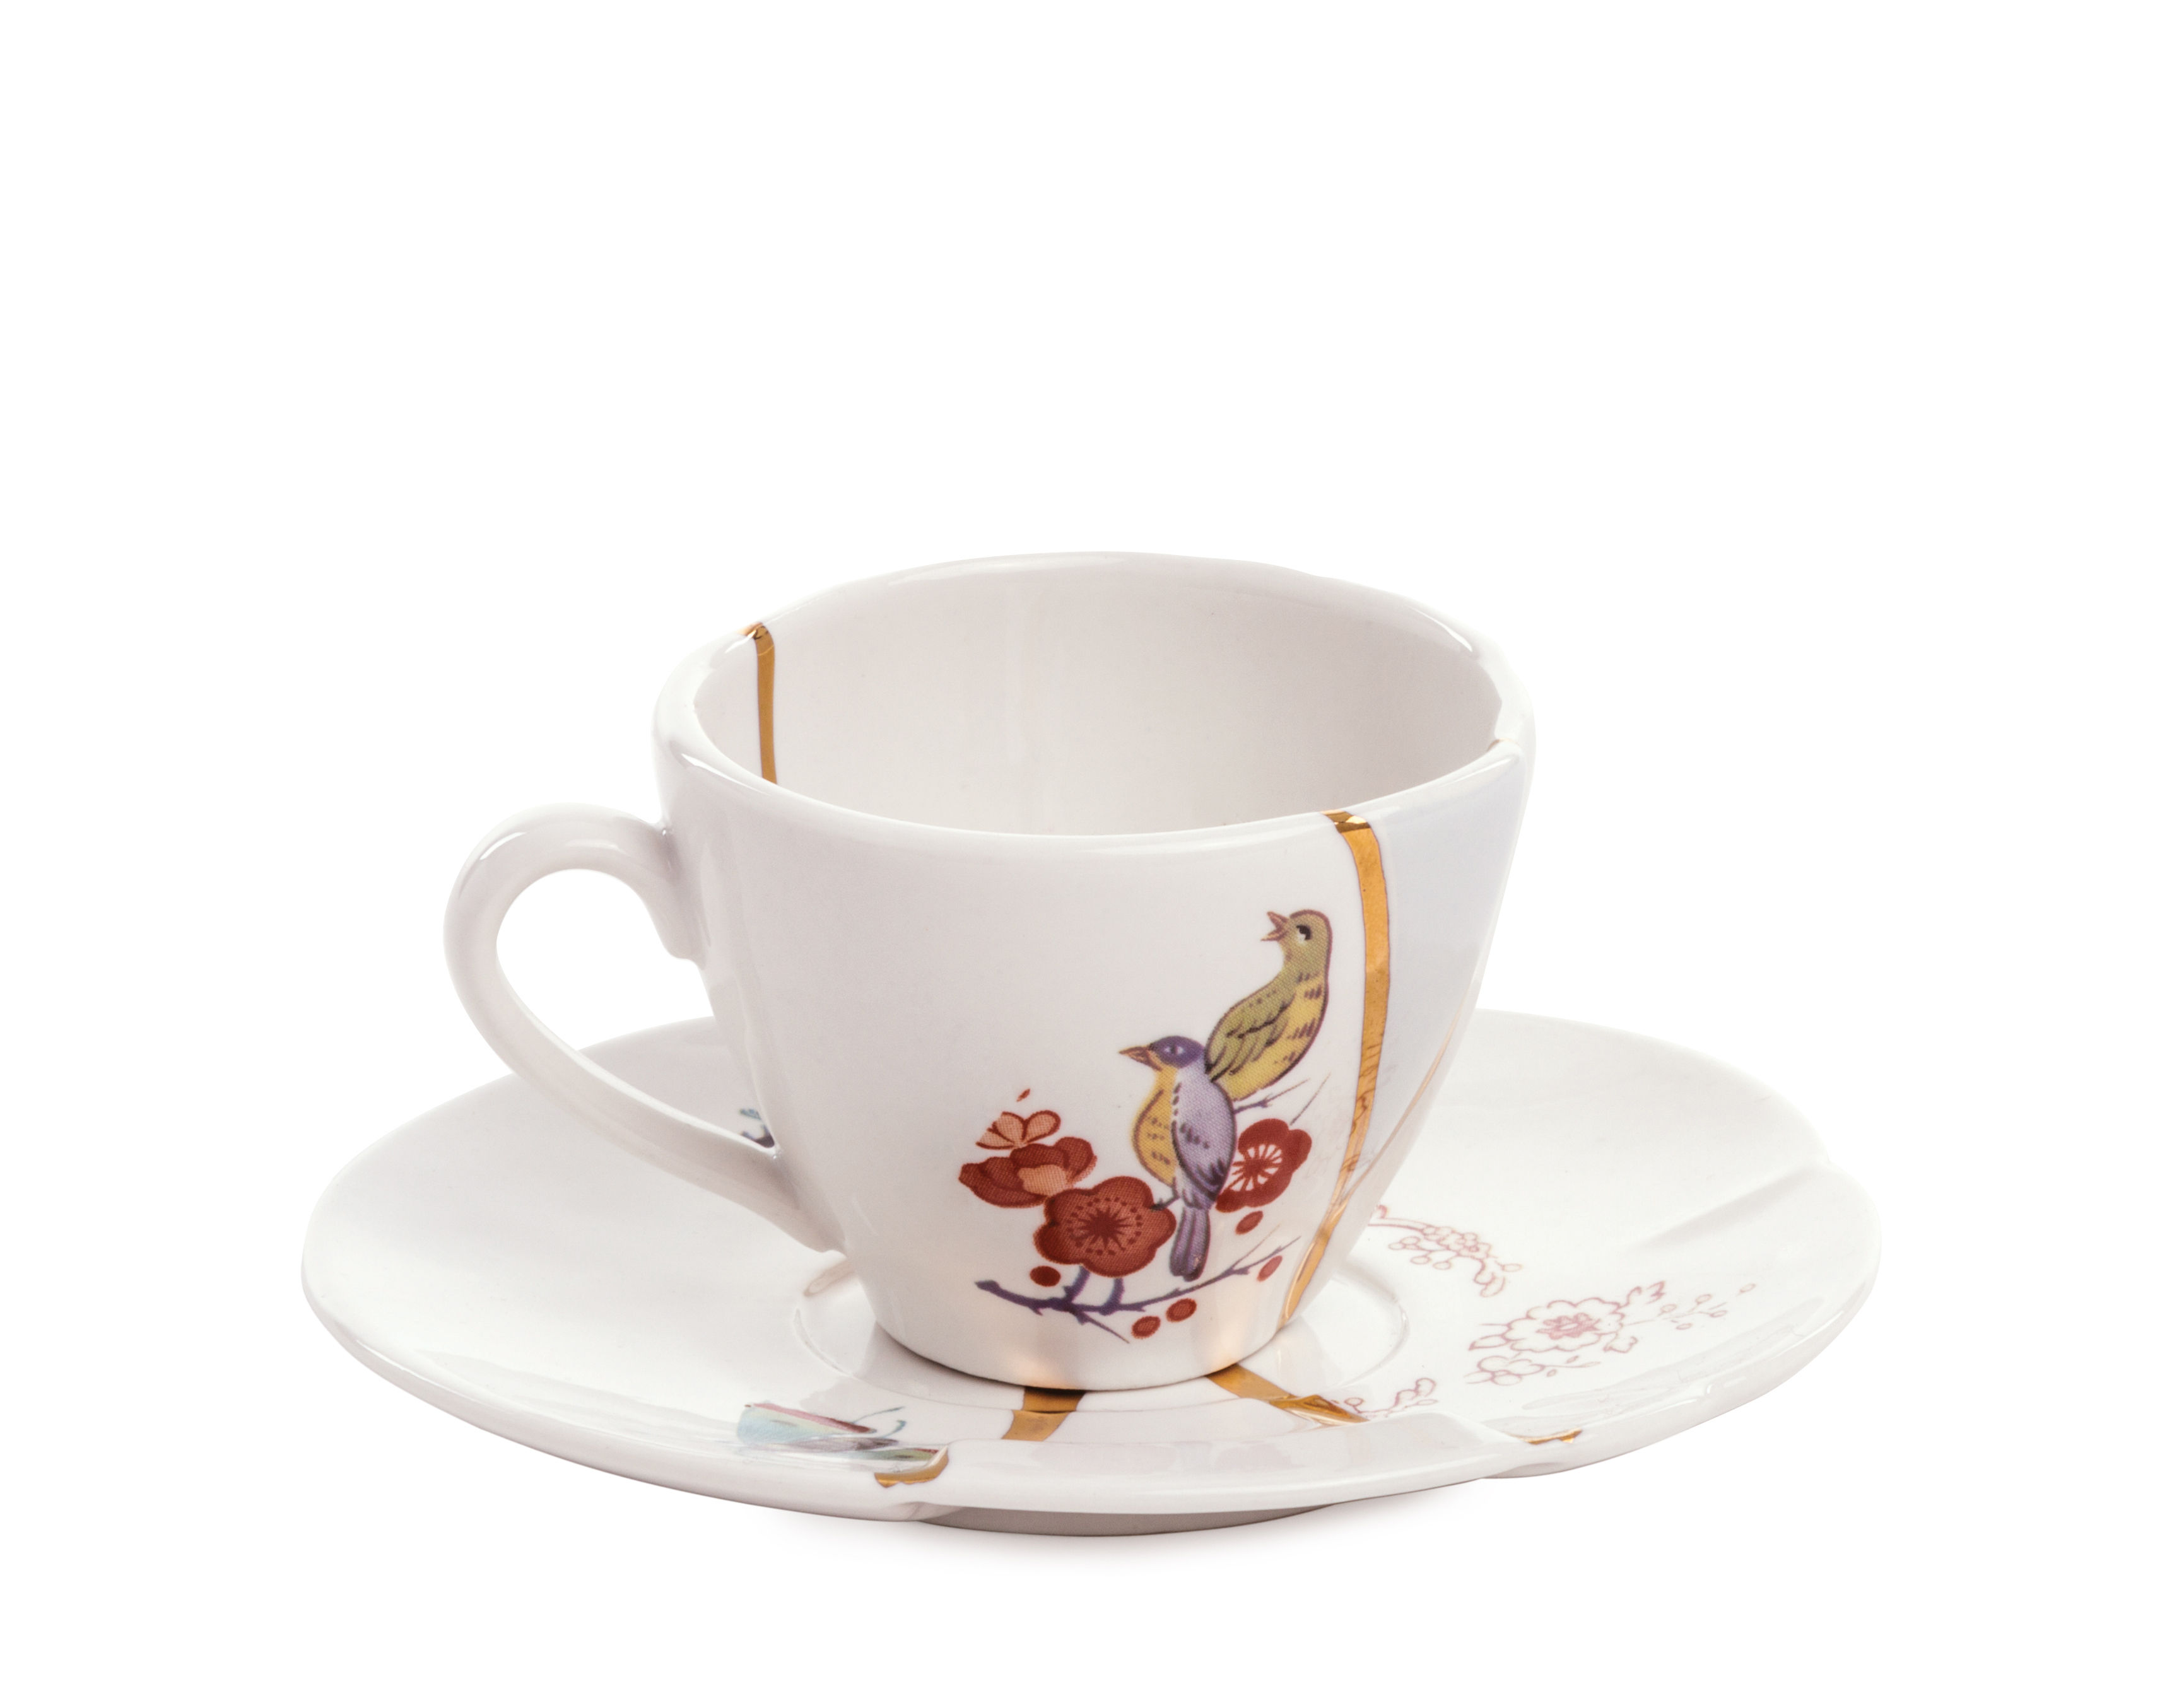 Kintsugi Kintsugi Coffee Cup Coffee Cup And Saucer Set By Seletti